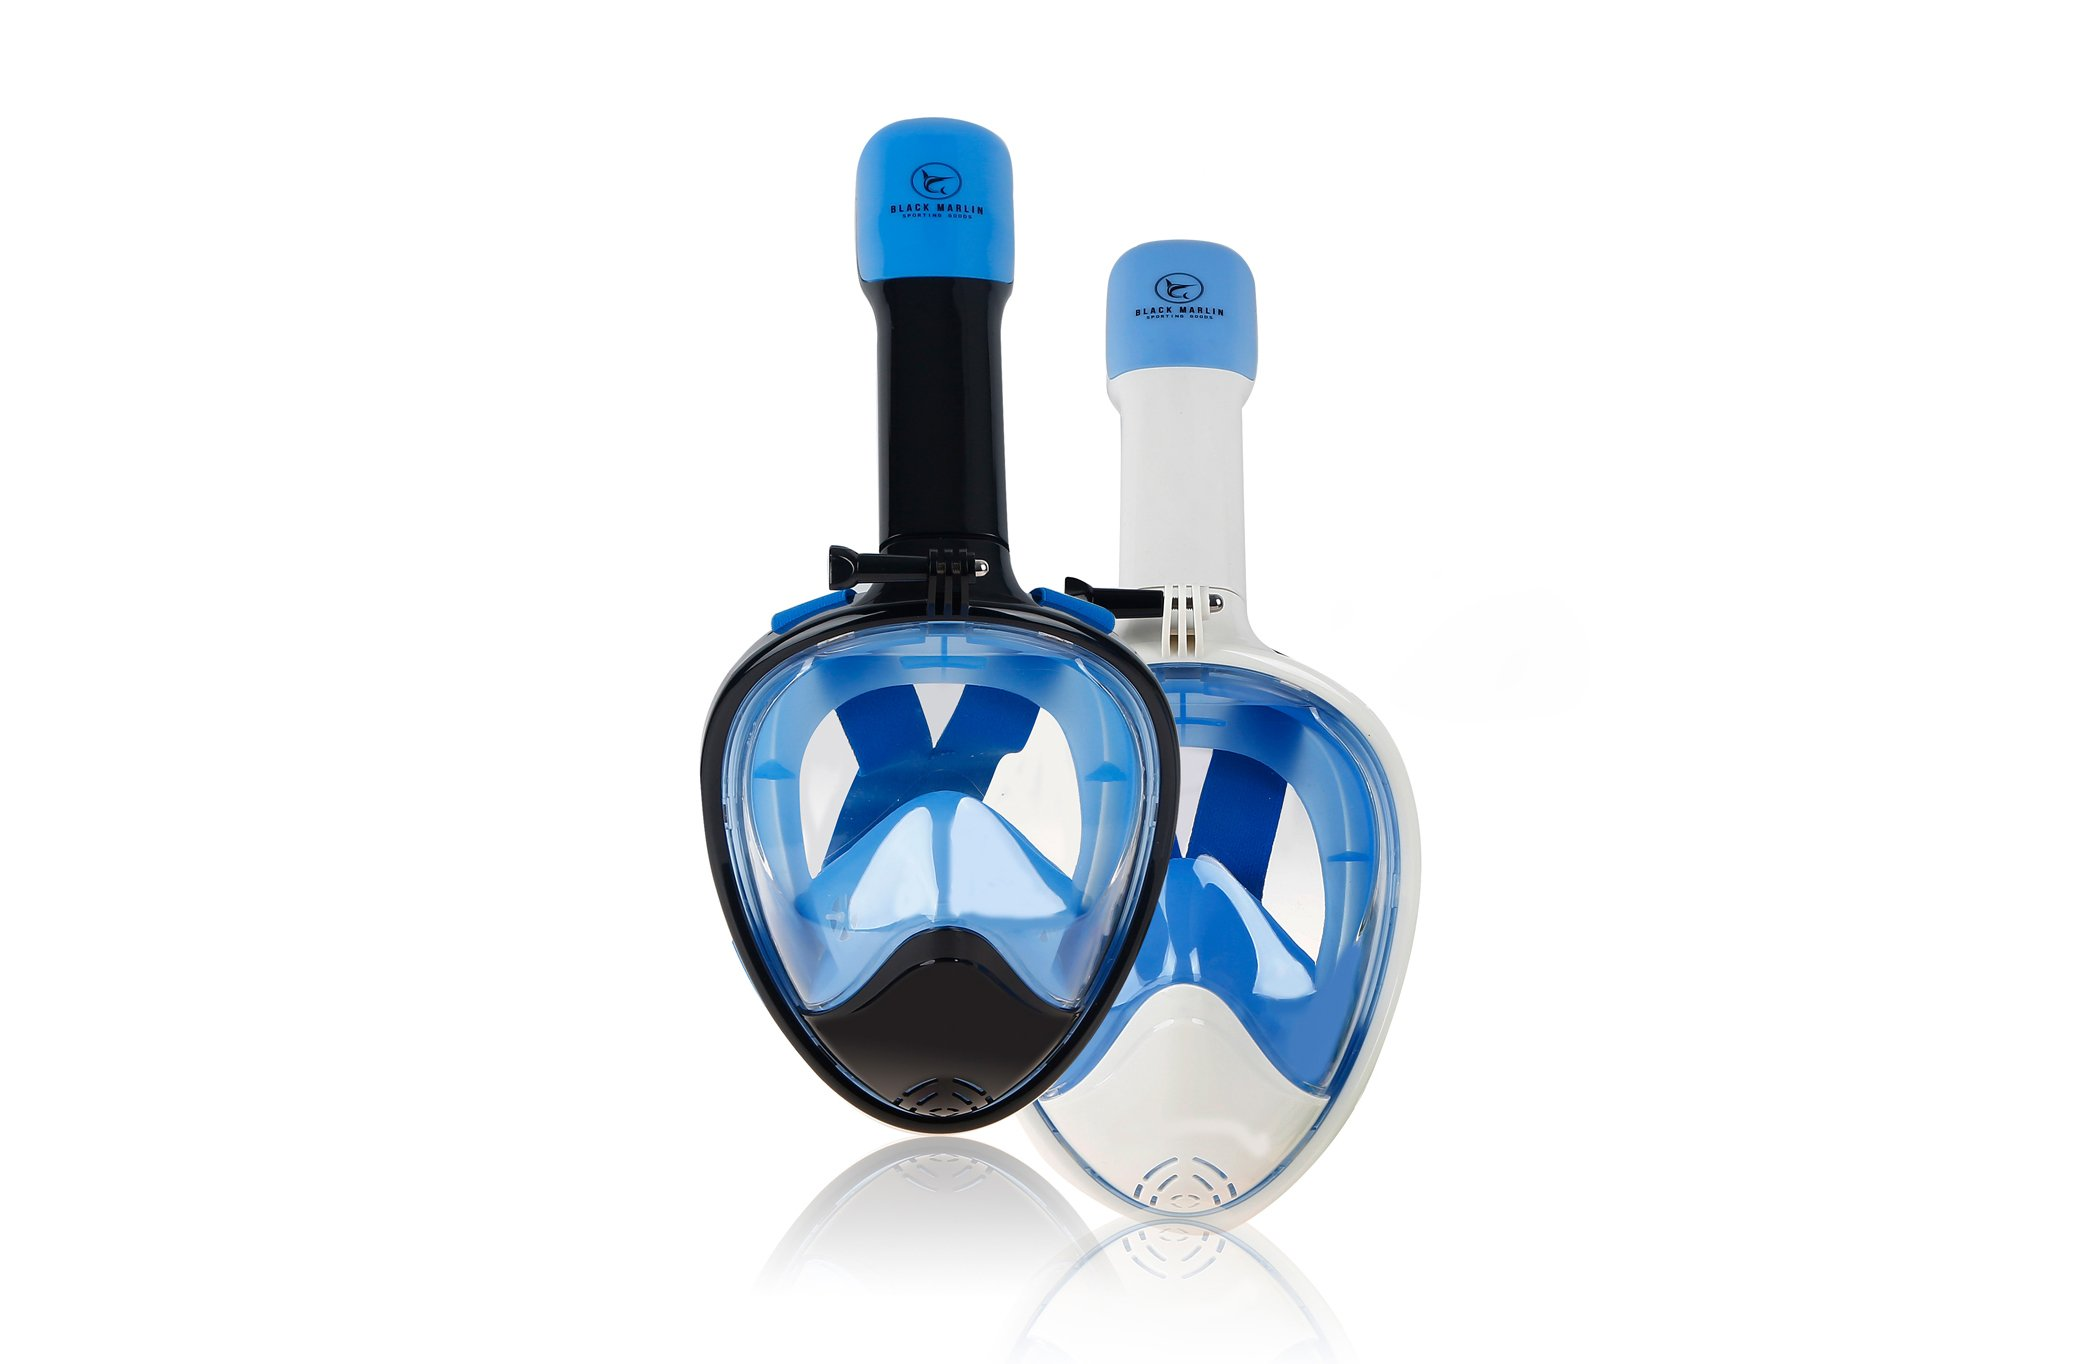 Upgraded 2020 Full Face Snorkel Mask Set Dry Top System Foldable 180 Degree Panoramic View Snorkeling Mask Package Set For Adults with Camera Mount, Anti-Leak, Anti-Fog Free Gear Bag & Manual Included by BLACK MARLIN